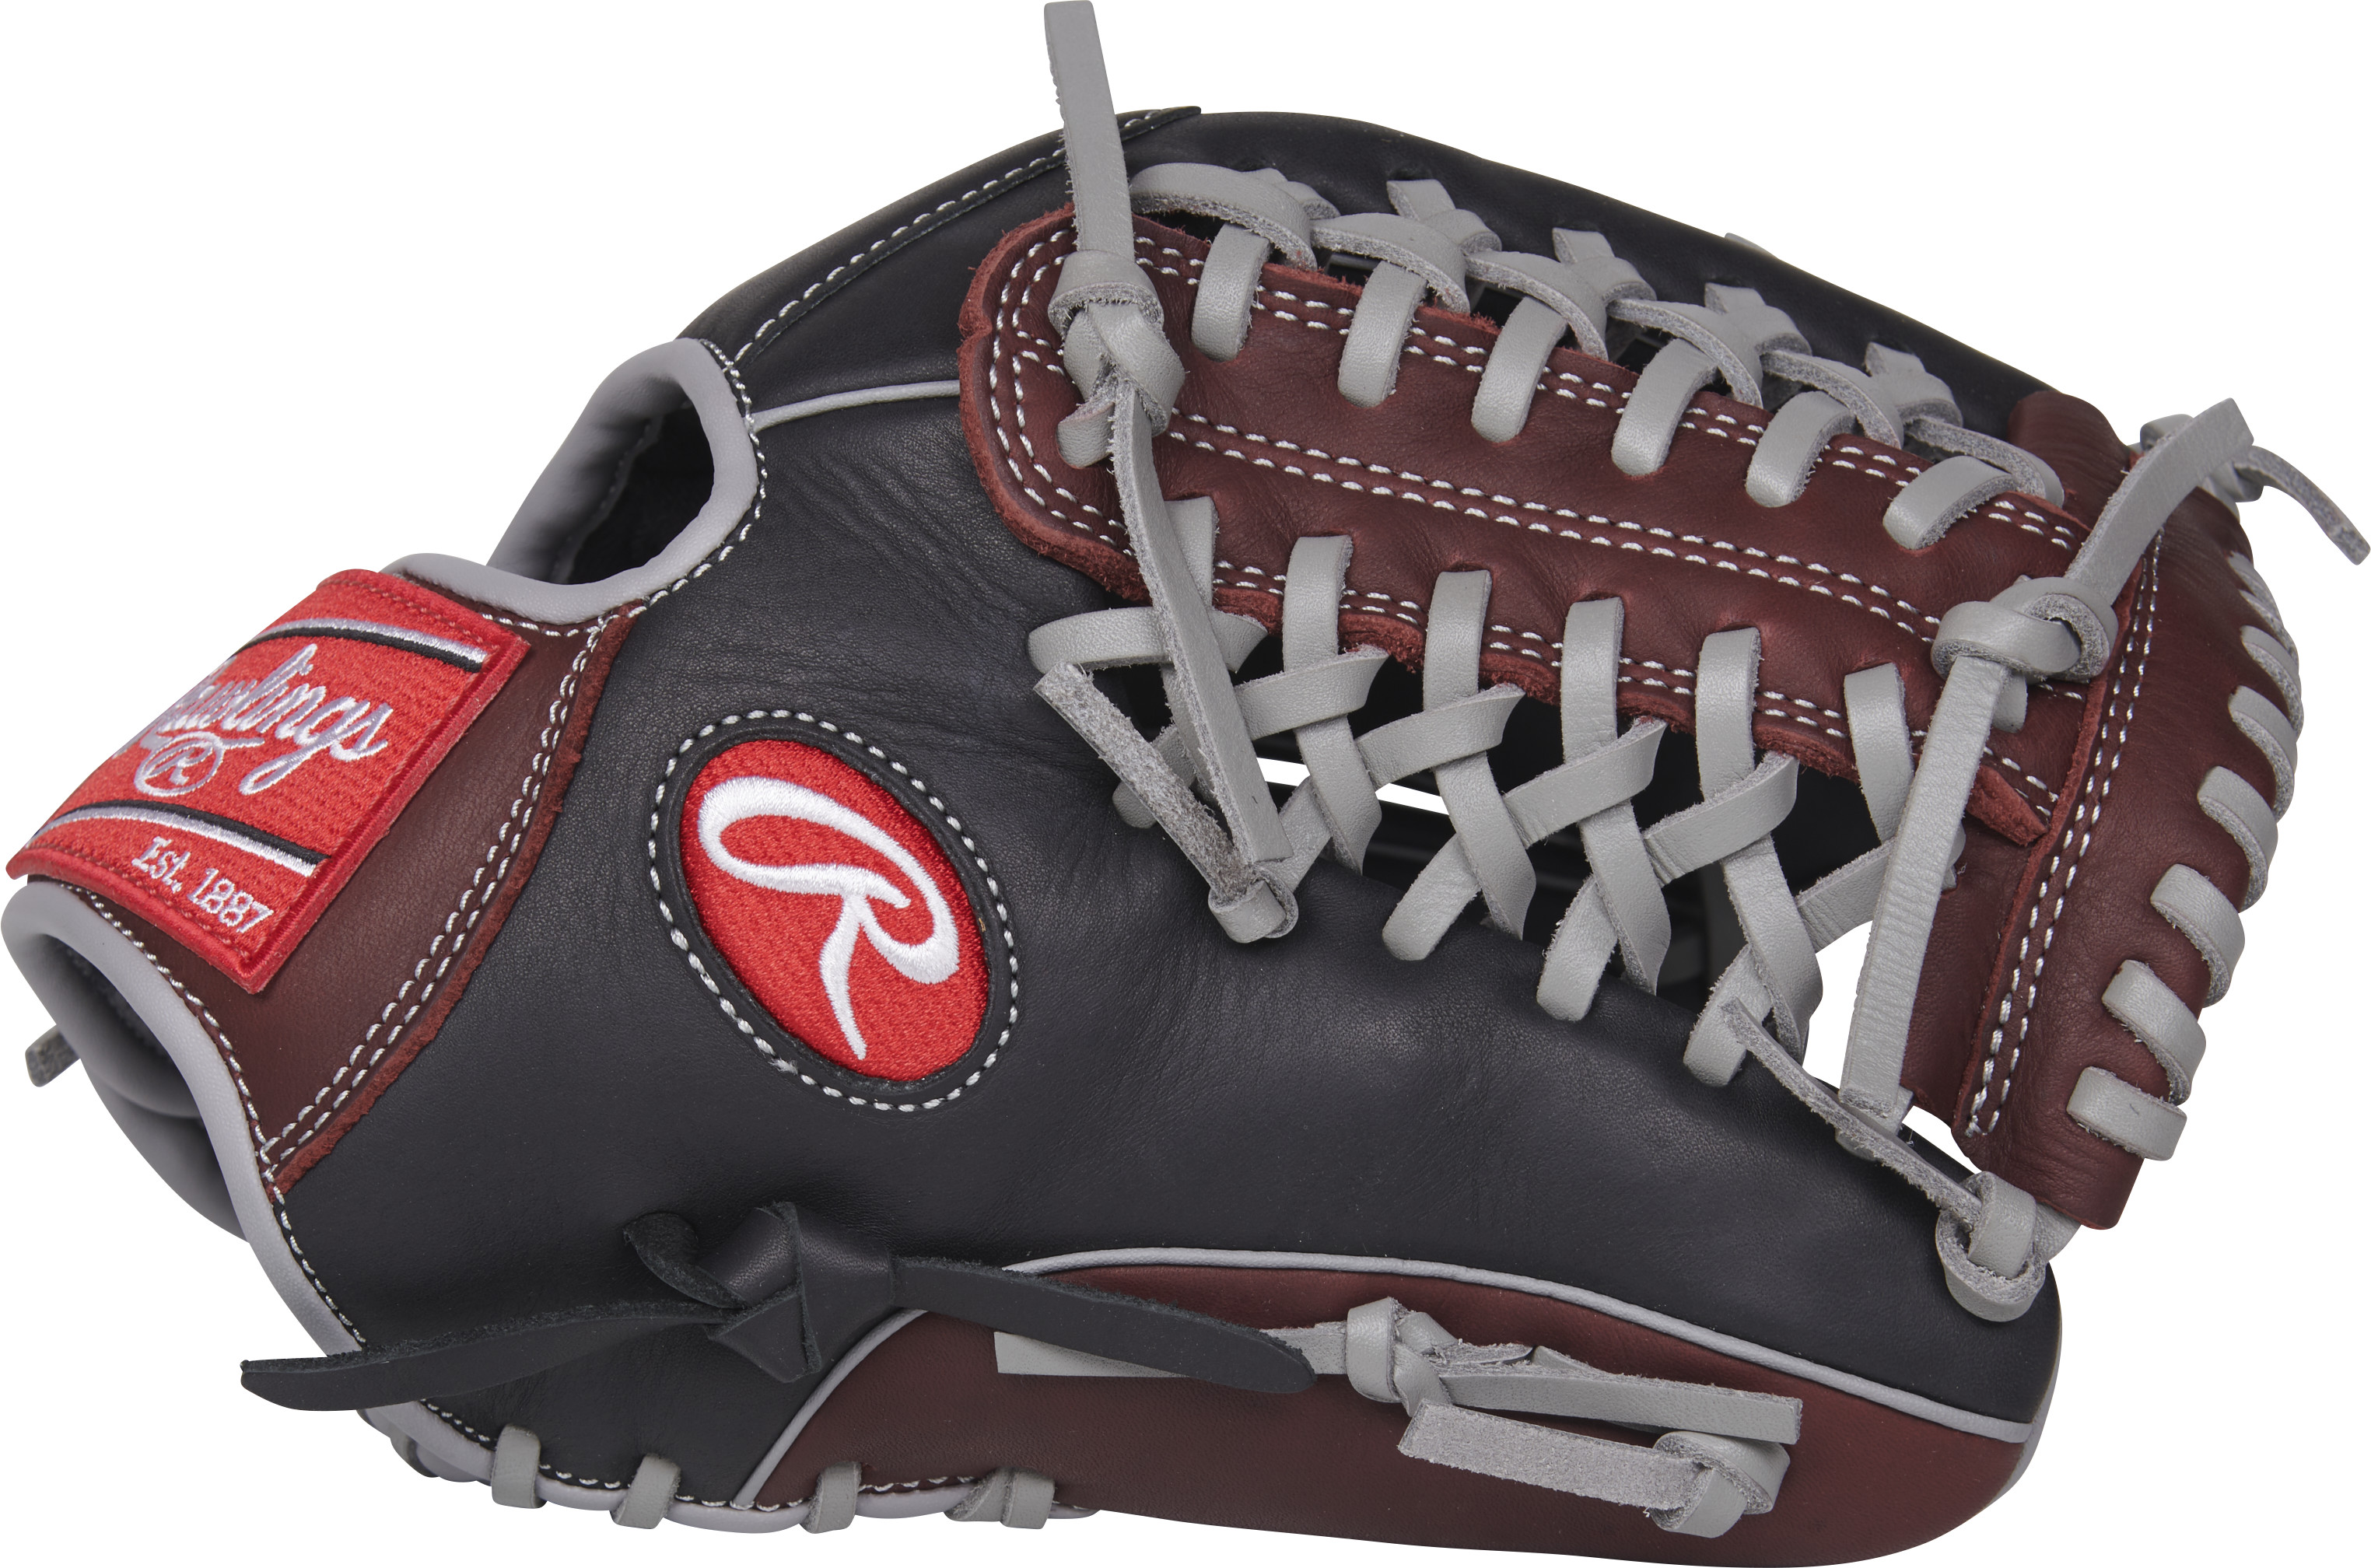 http://www.bestbatdeals.com/images/gloves/rawlings/R9205-4BSG-3.jpg